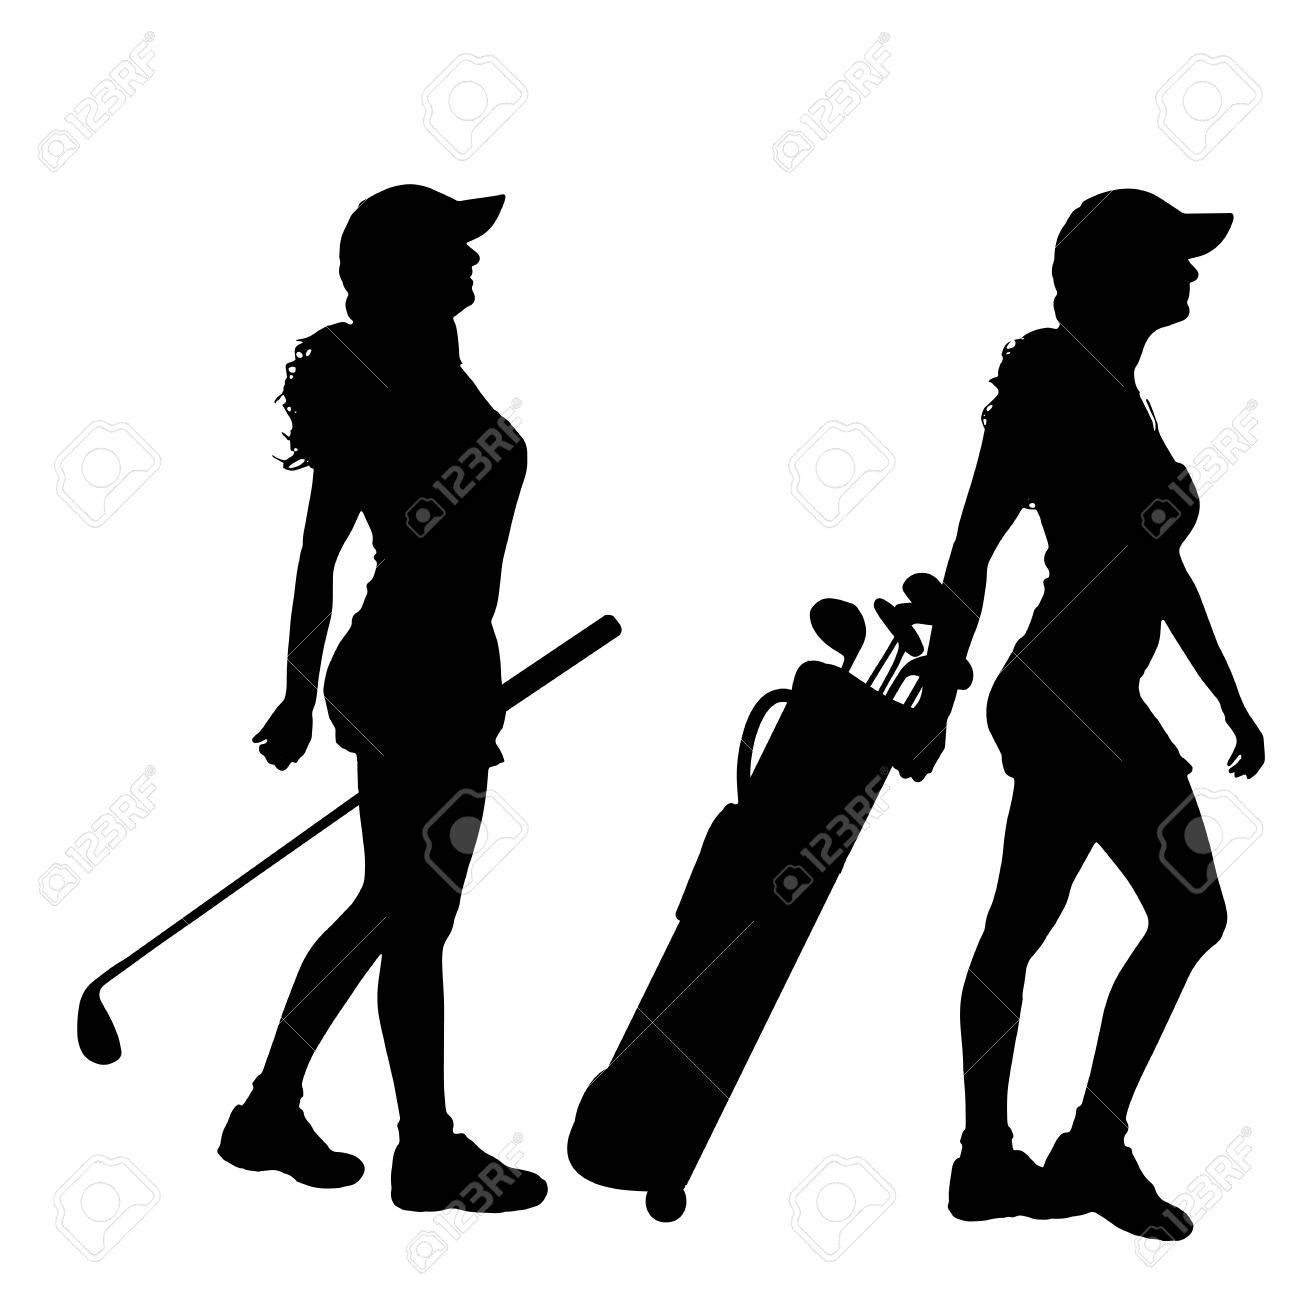 Vector Silhouette Of The Woman Who Plays Golf Royalty Free Cliparts